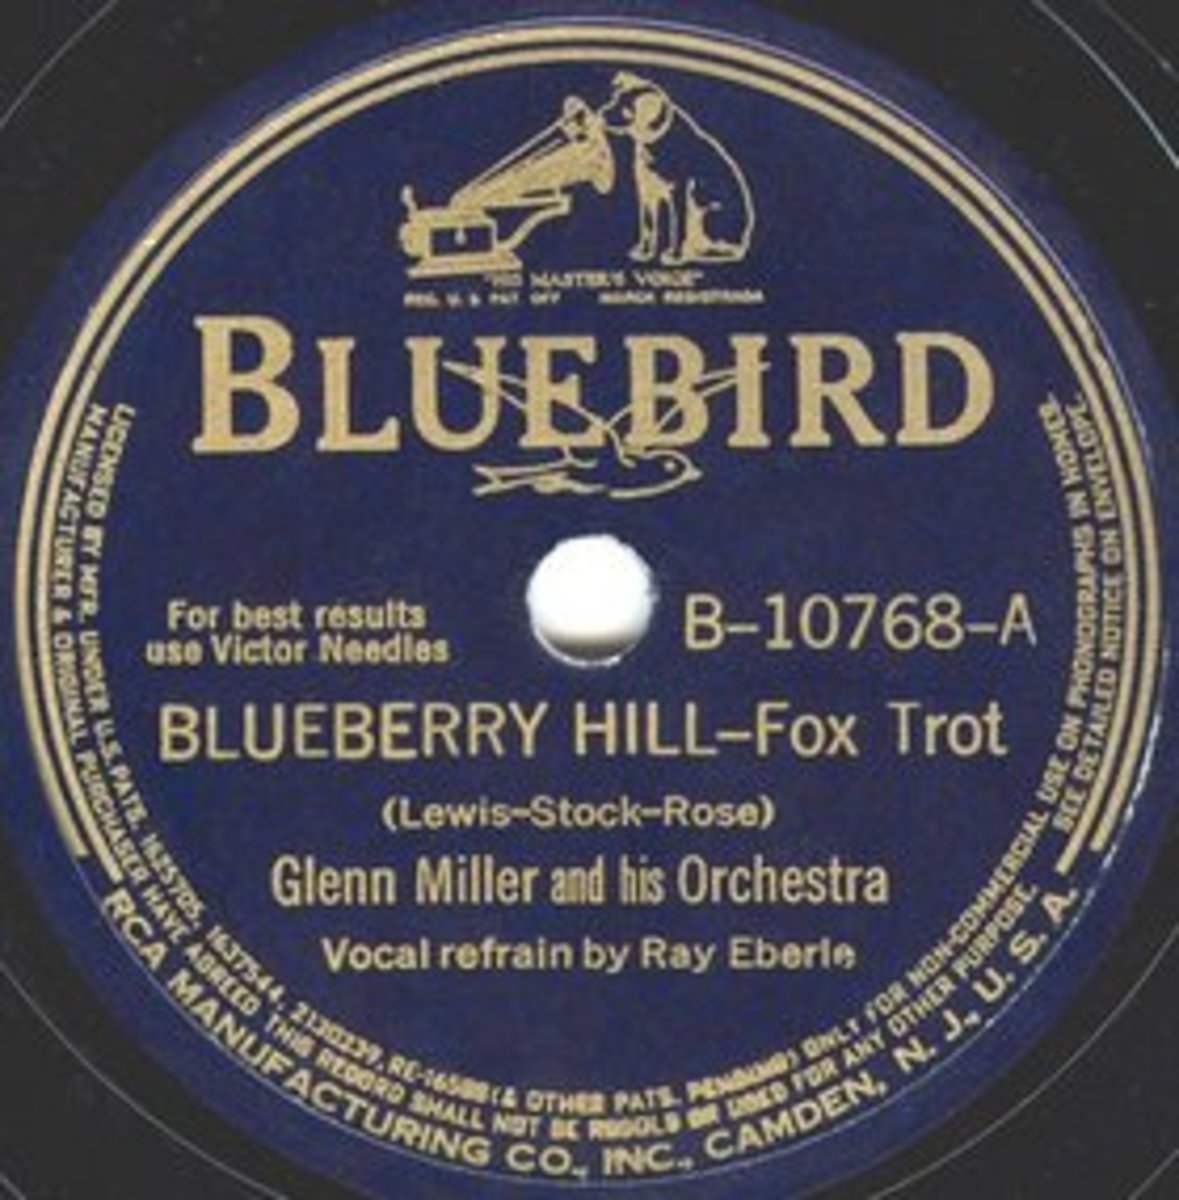 Glen Miller's LP Blueberry Hill